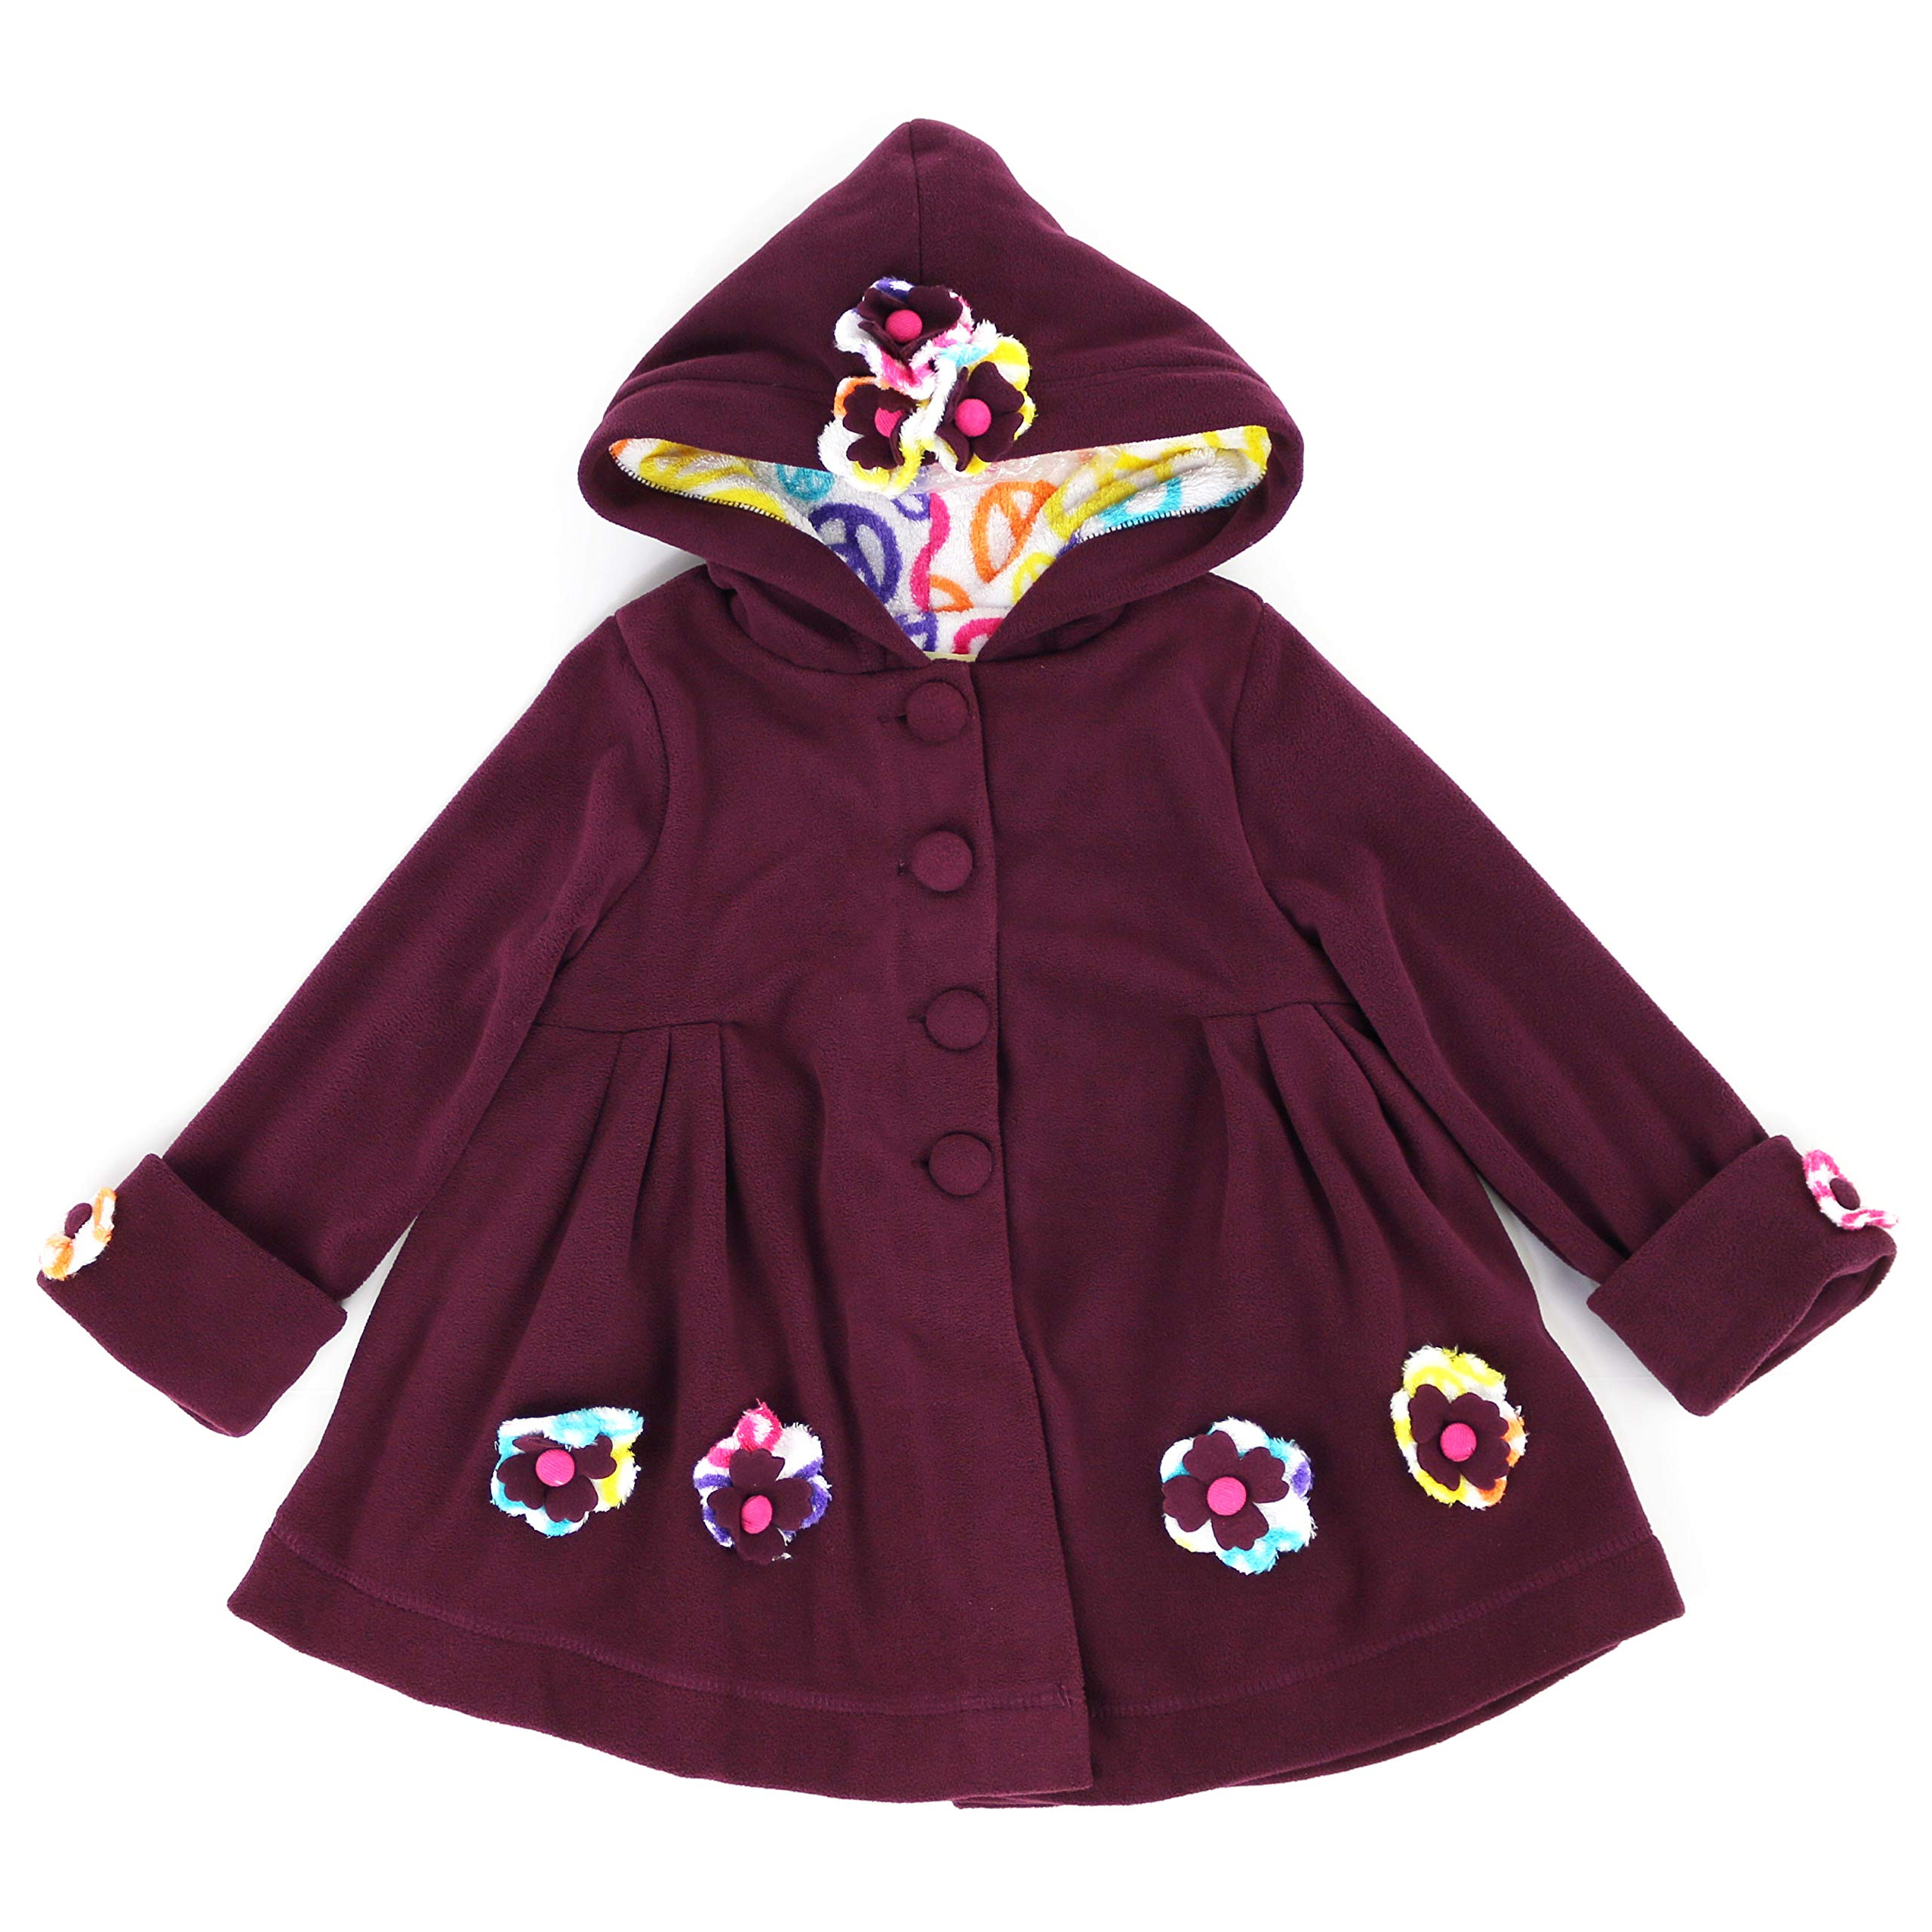 Maria Elena - Toddlers and Girls Carrie Peace and Love Fleece Jacket in Orchid 5